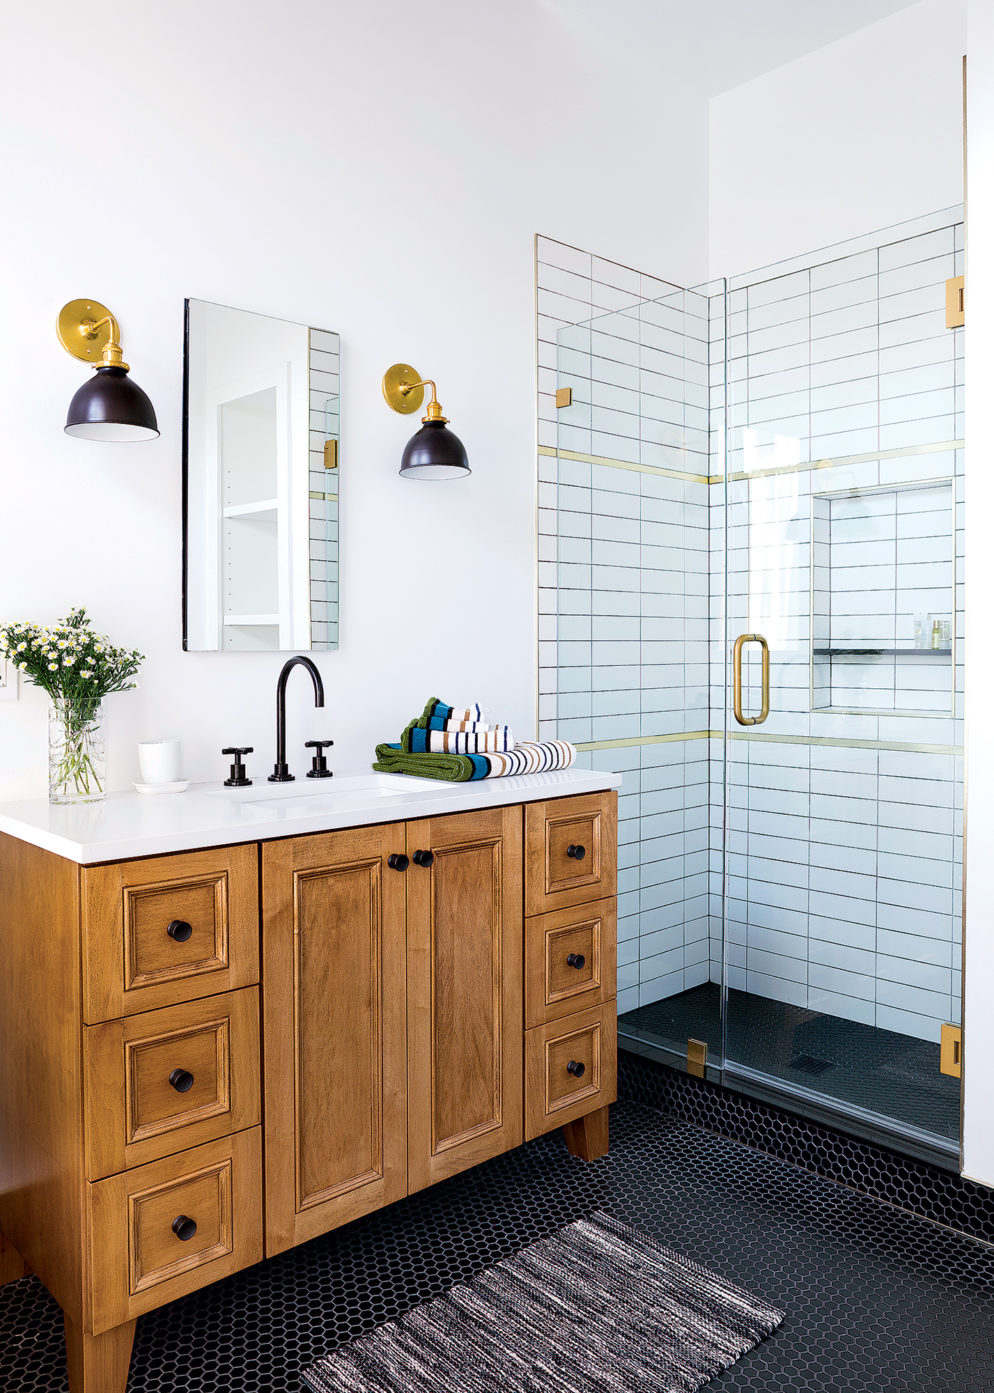 Bathroom Remodeling Trends: Trendy Metallic Fixtures